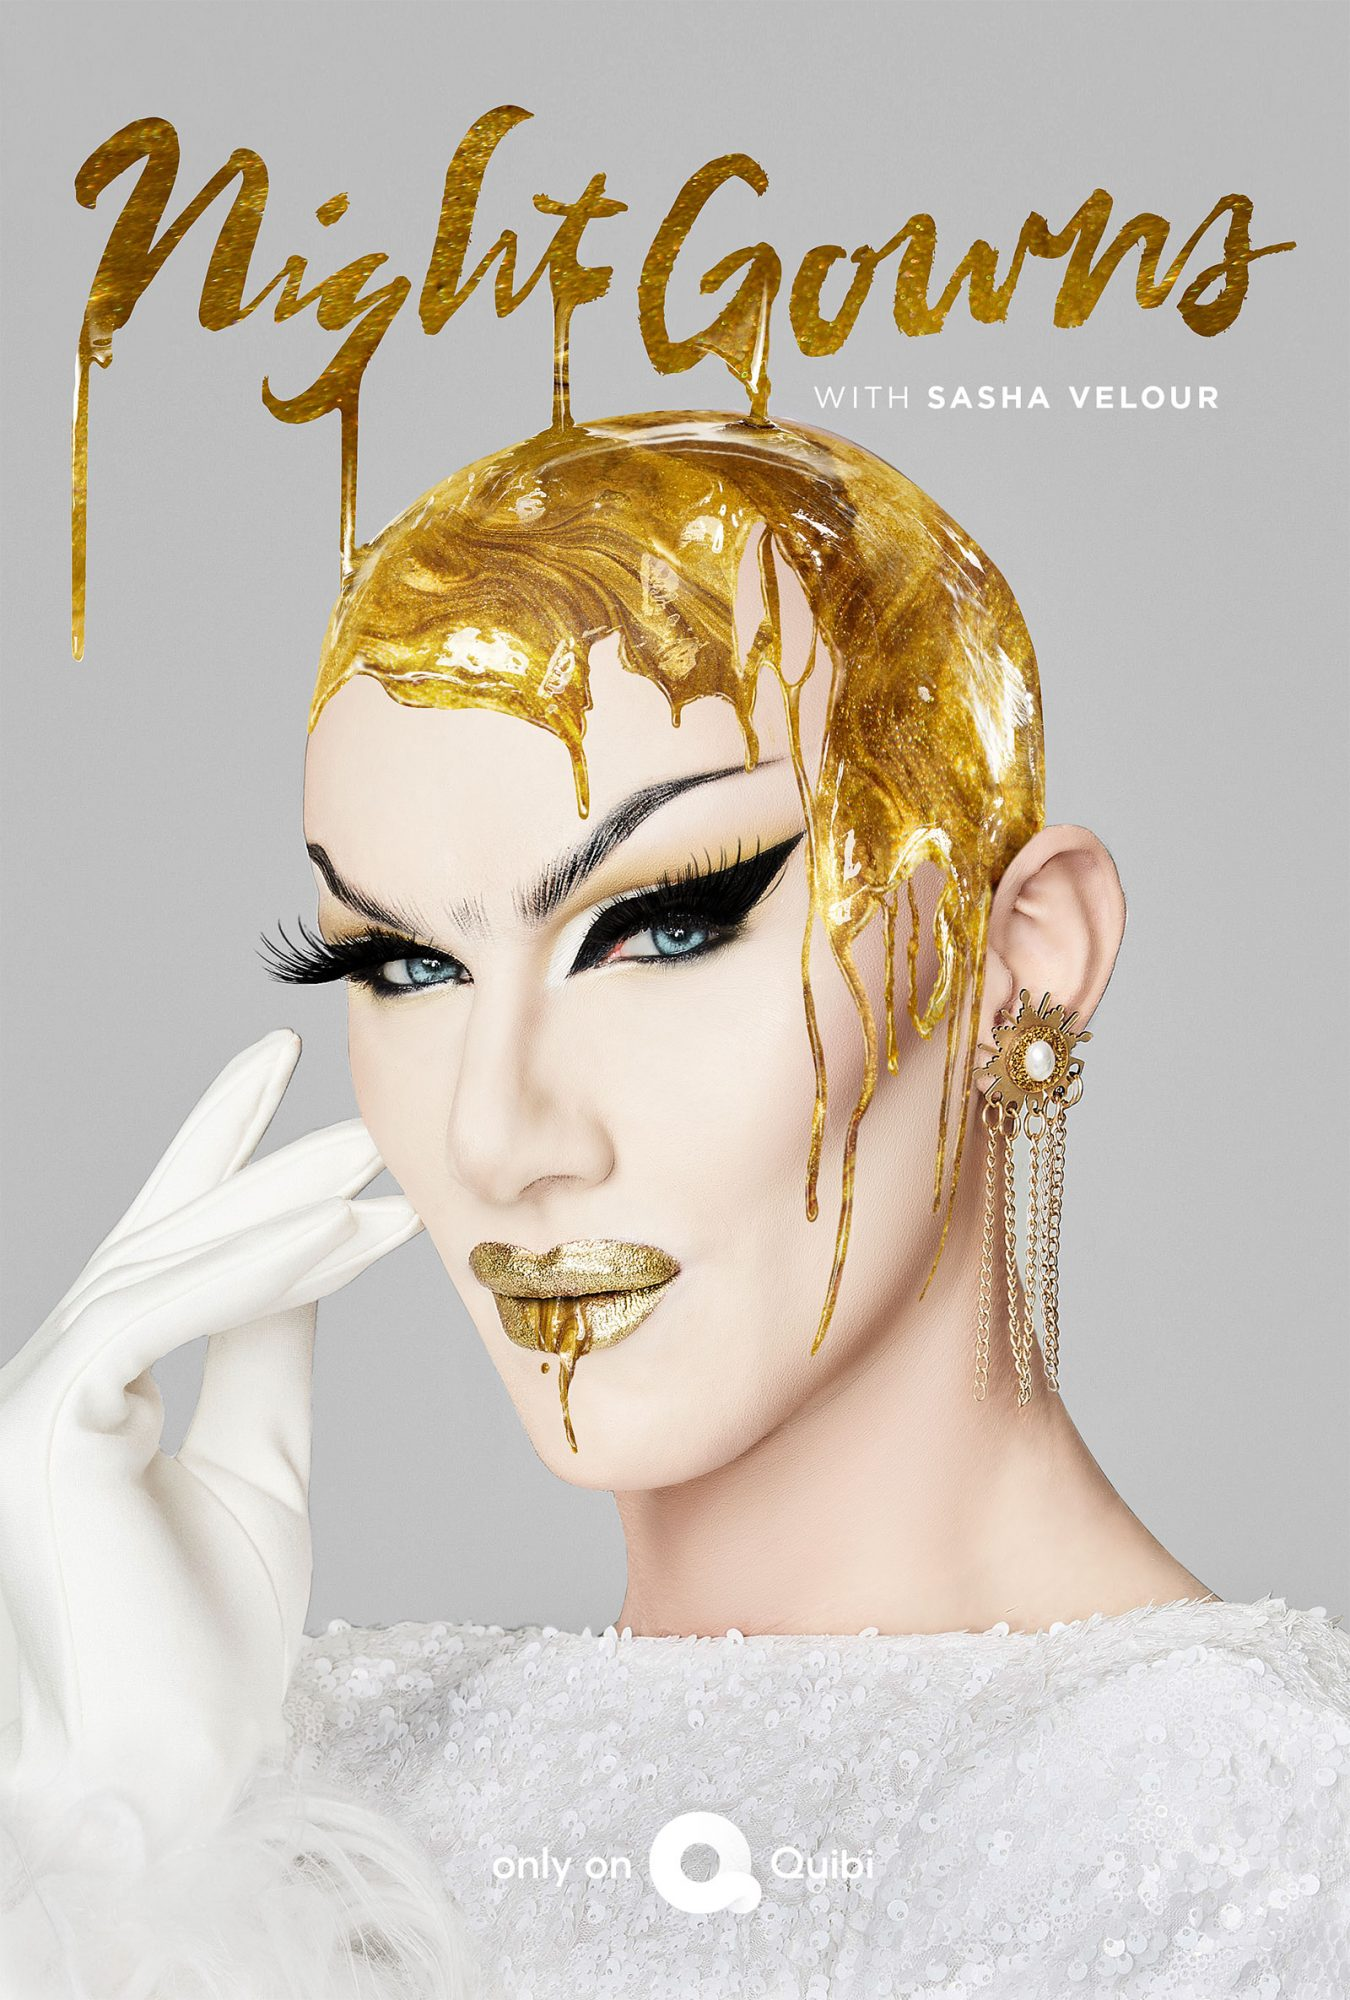 Night Gowns with Sasha Velour